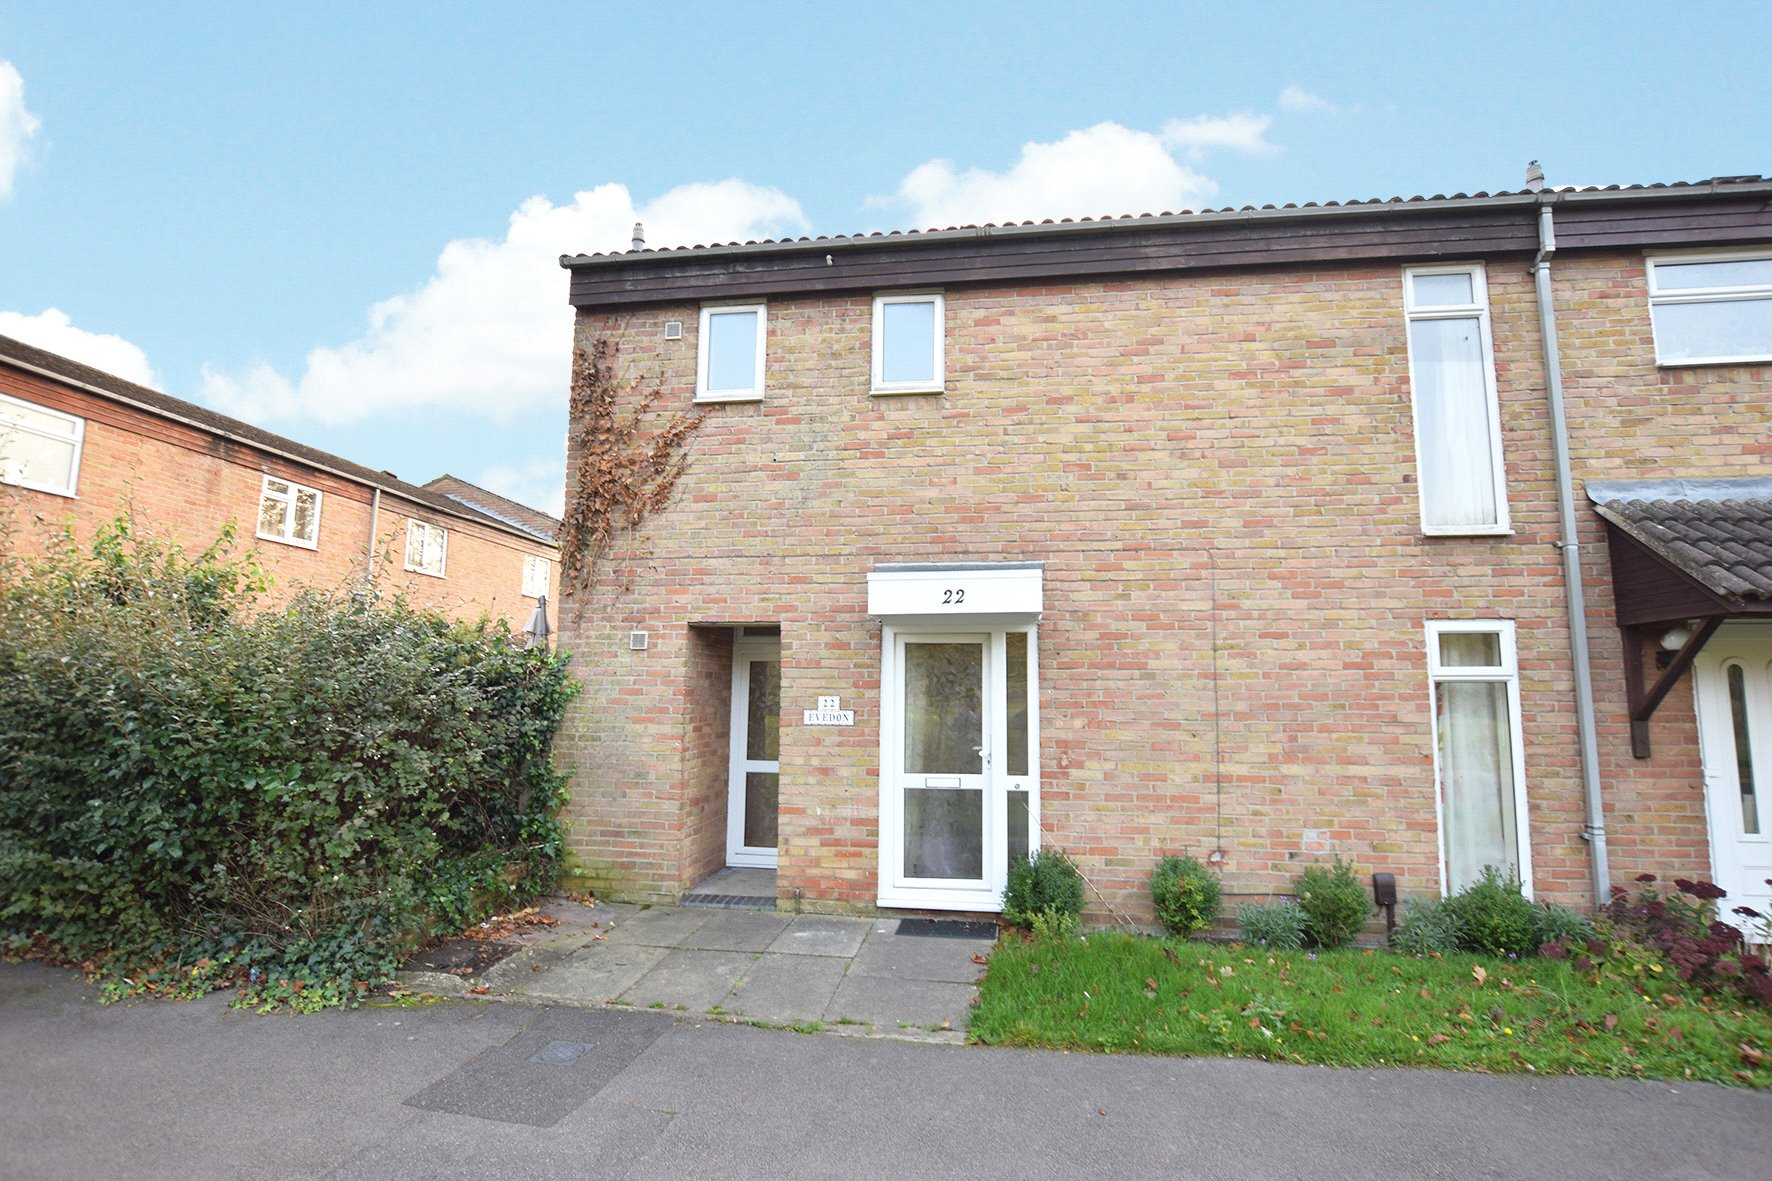 2 Bedrooms Semi Detached House for sale in Evedon, Bracknell, Berkshire, RG12